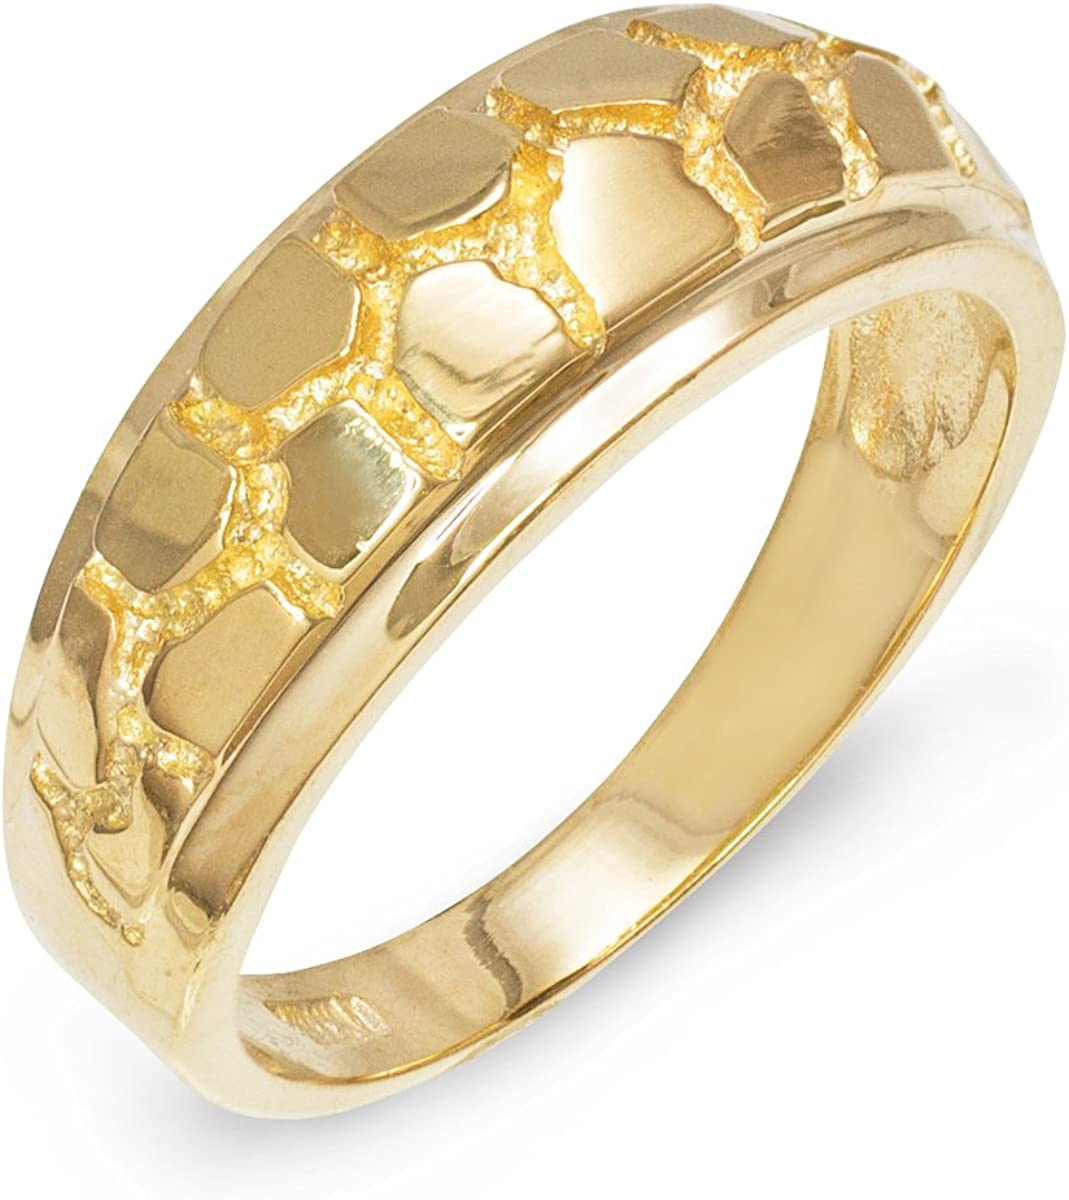 Men S Solid 10k Yellow Gold Textured Band Nugget Wedding Ring